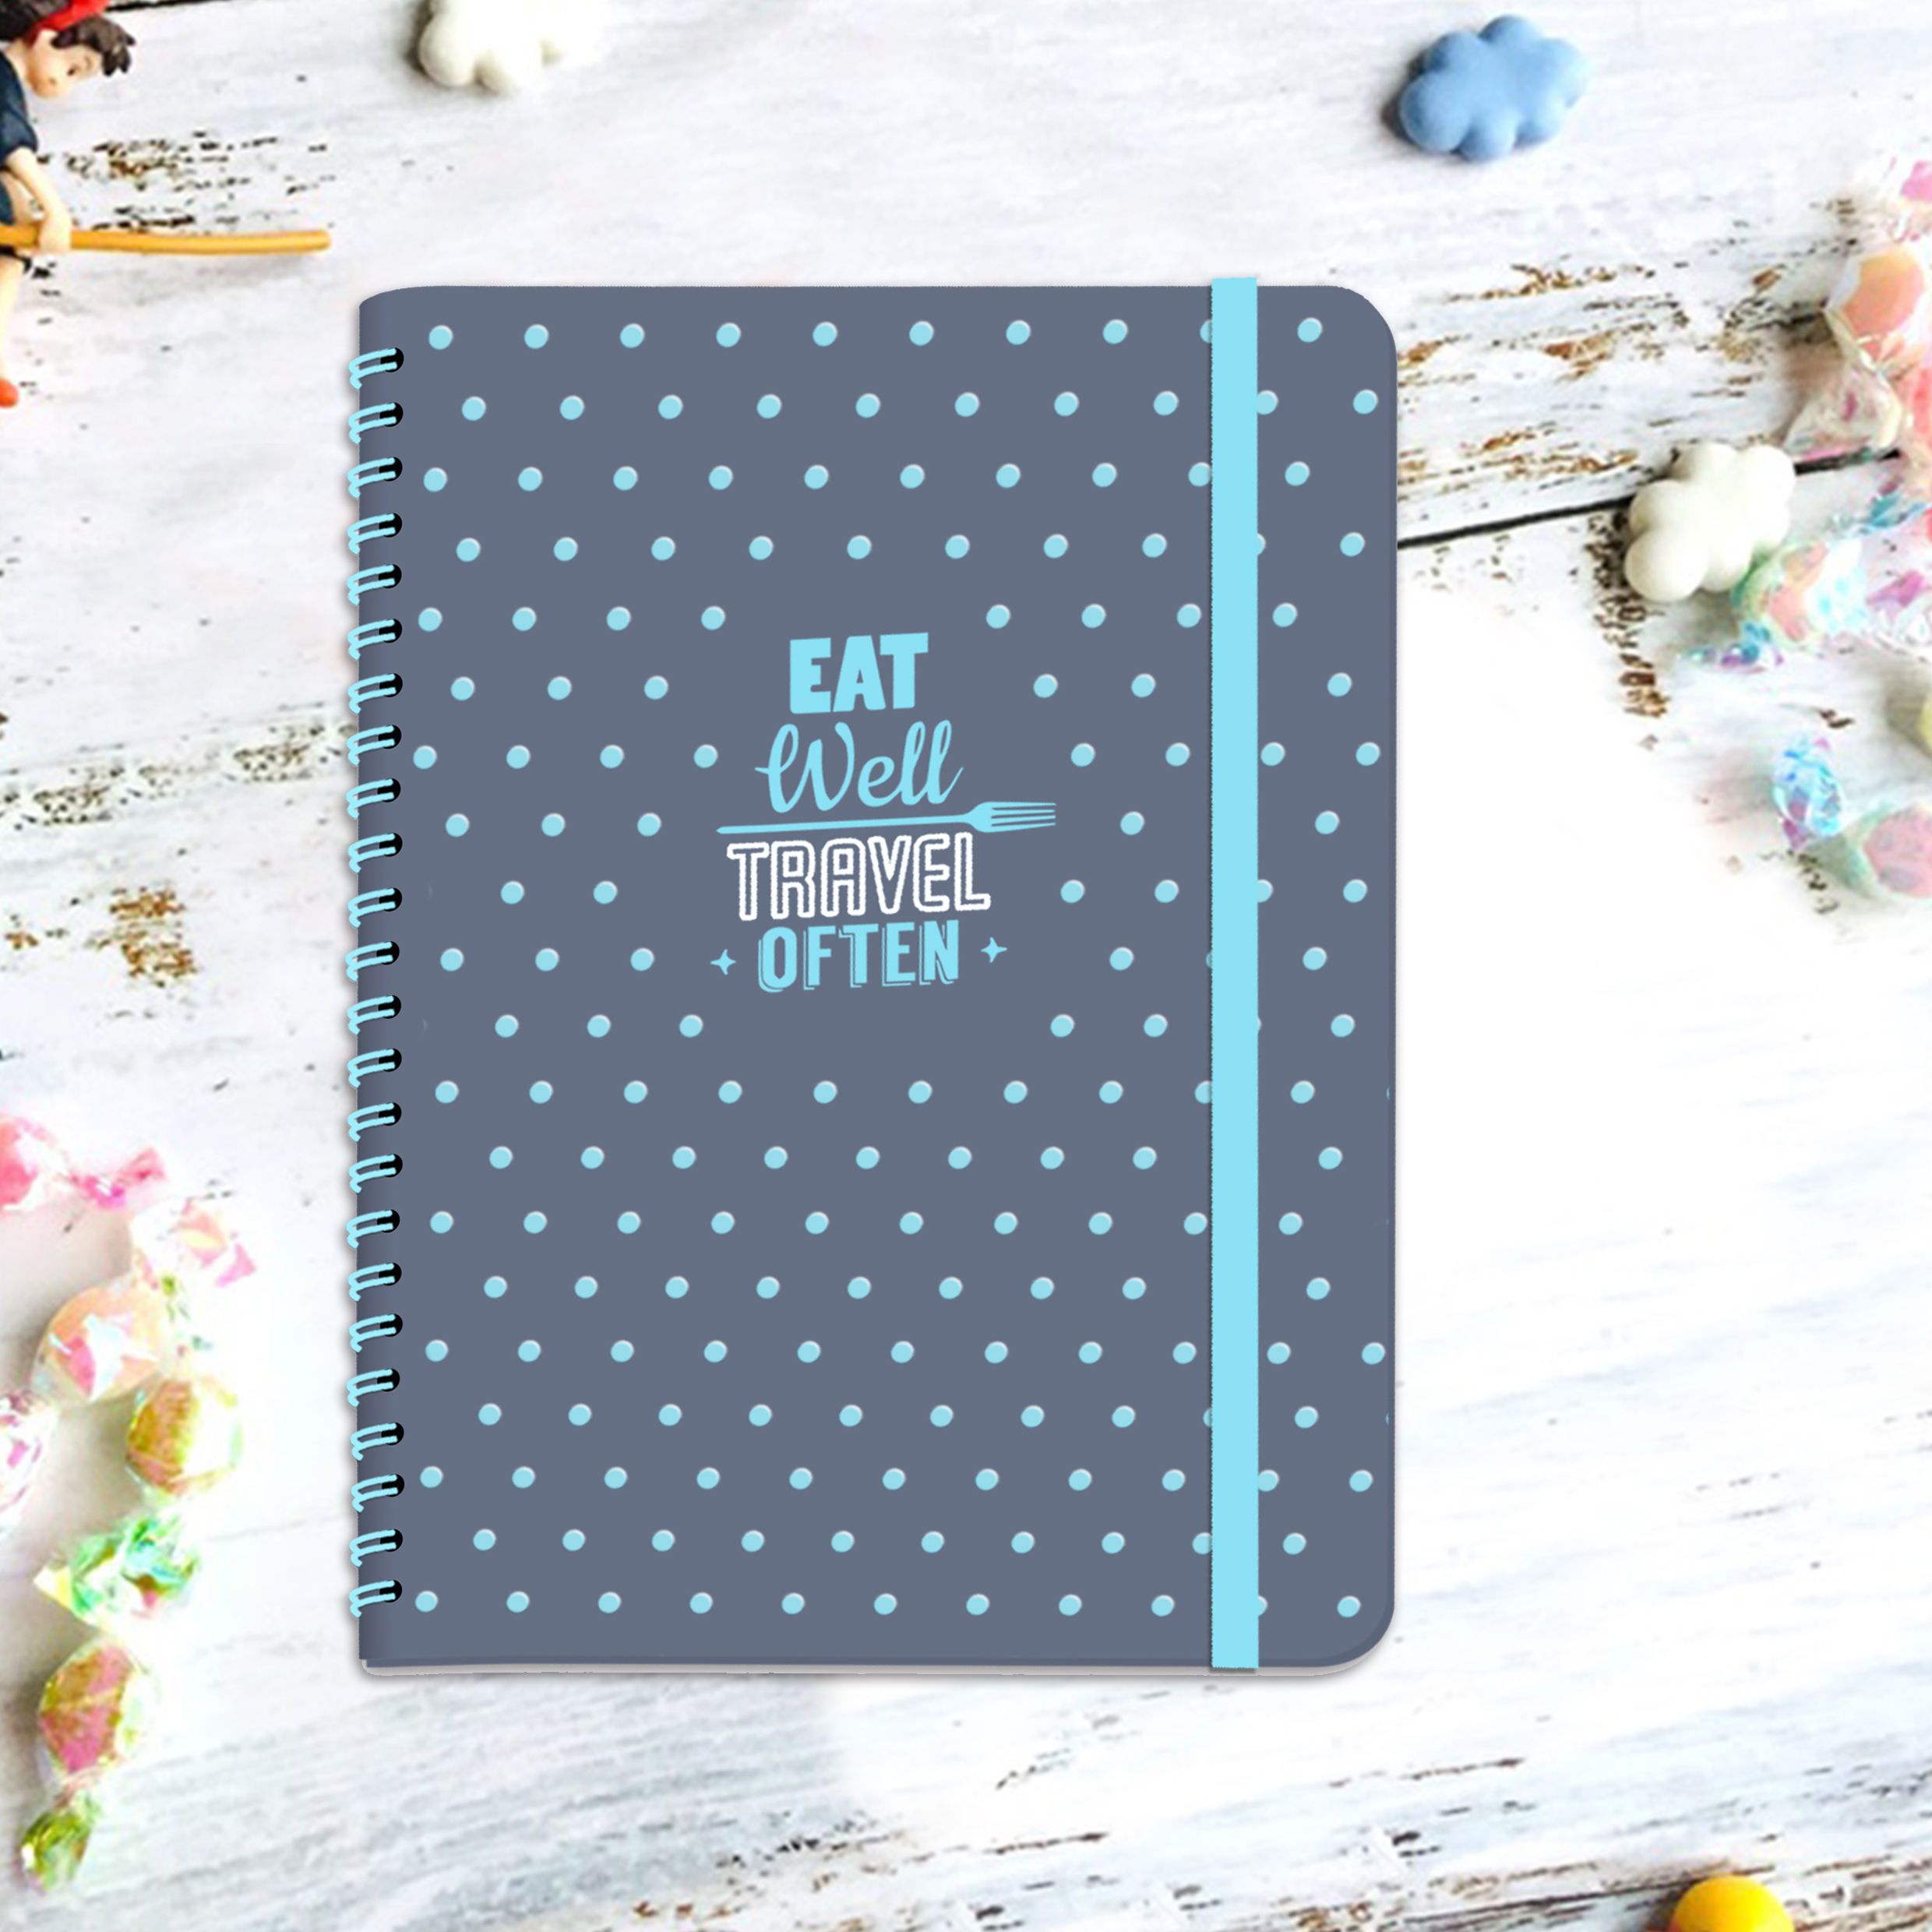 Promotional Notebooks Dot Art Style Fresh Notebook Water Drop Uv Effect Stationery 157 Gsm Cheap Notebook